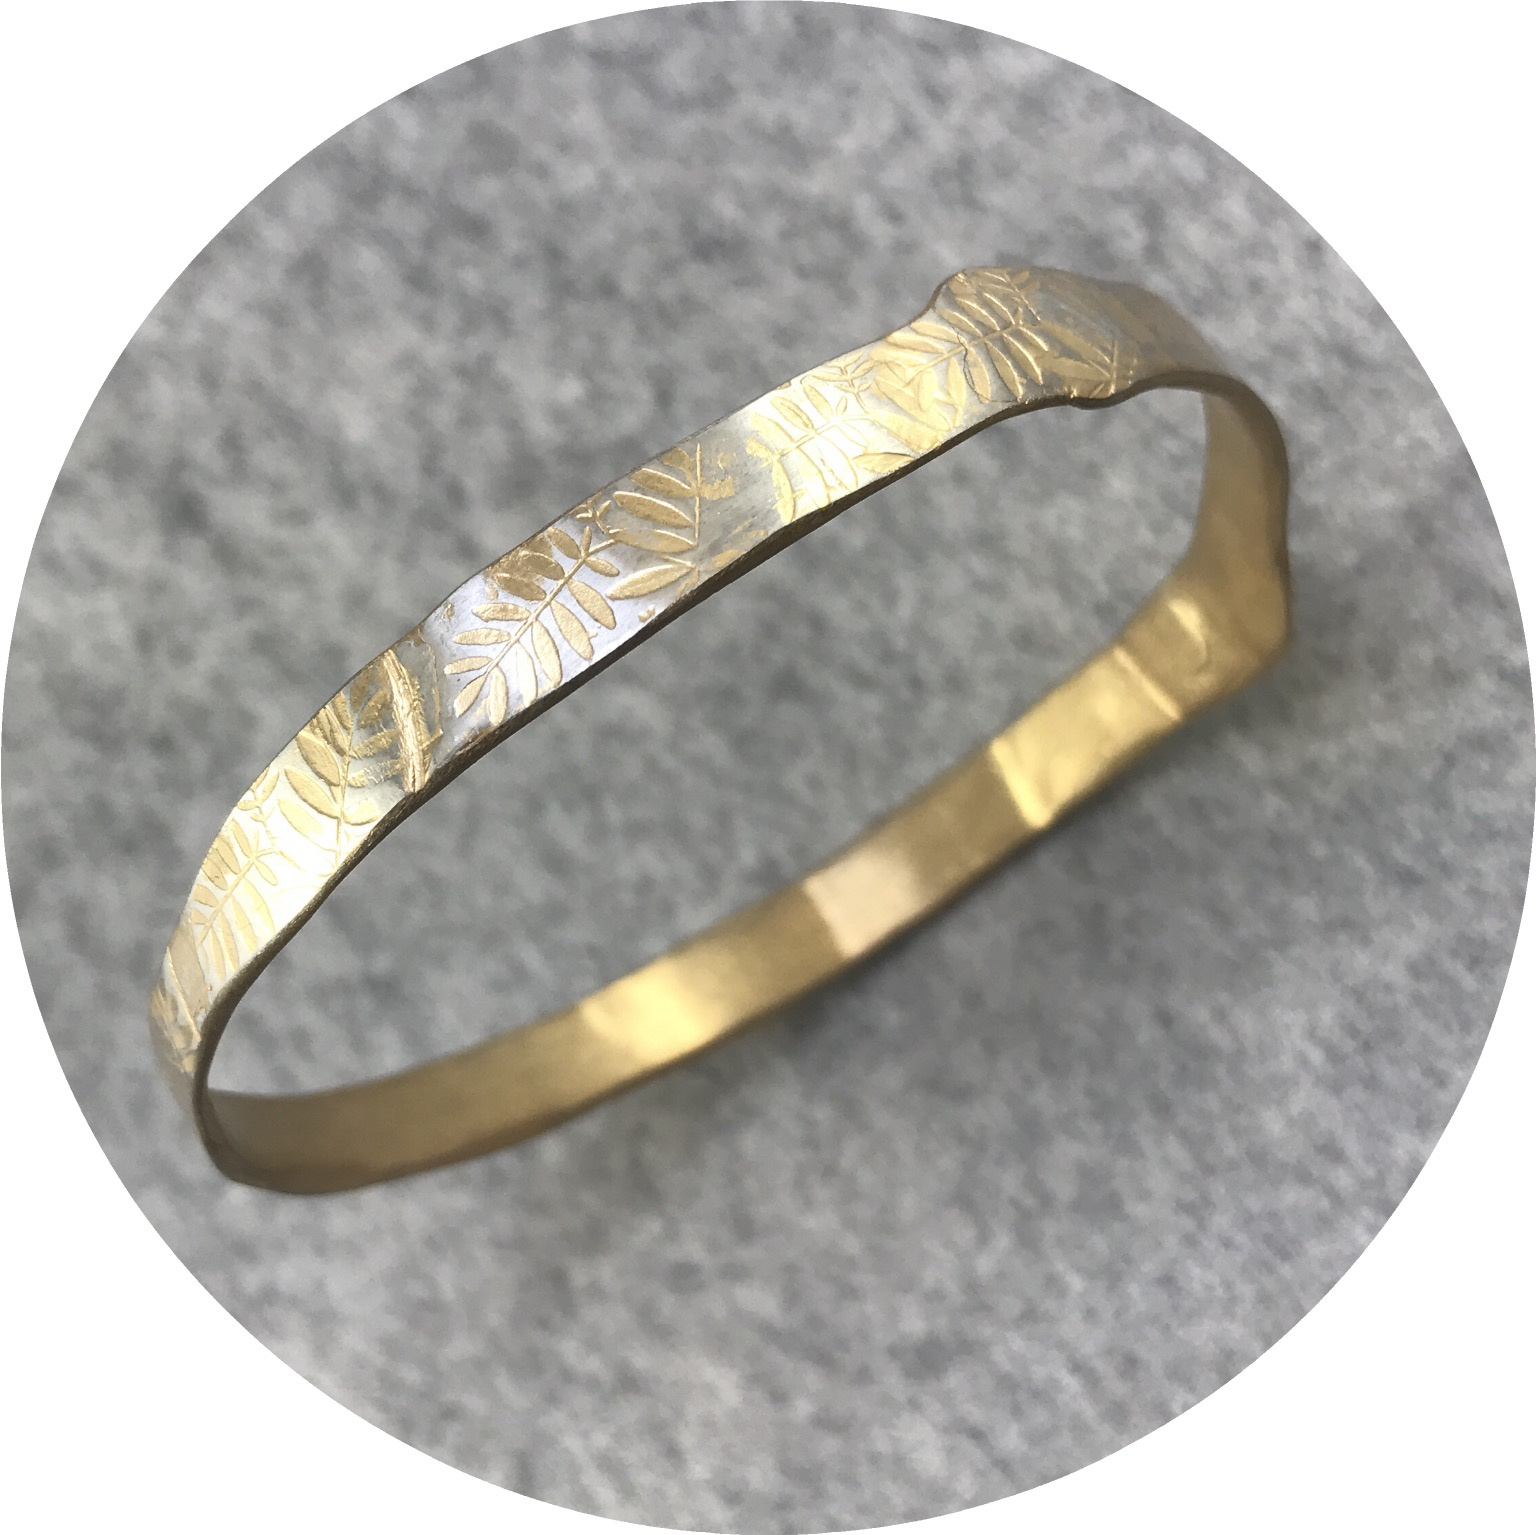 Claire Taylor - Leaves Pattern Bangle in Yellow Gold Plated  Sterling Silver